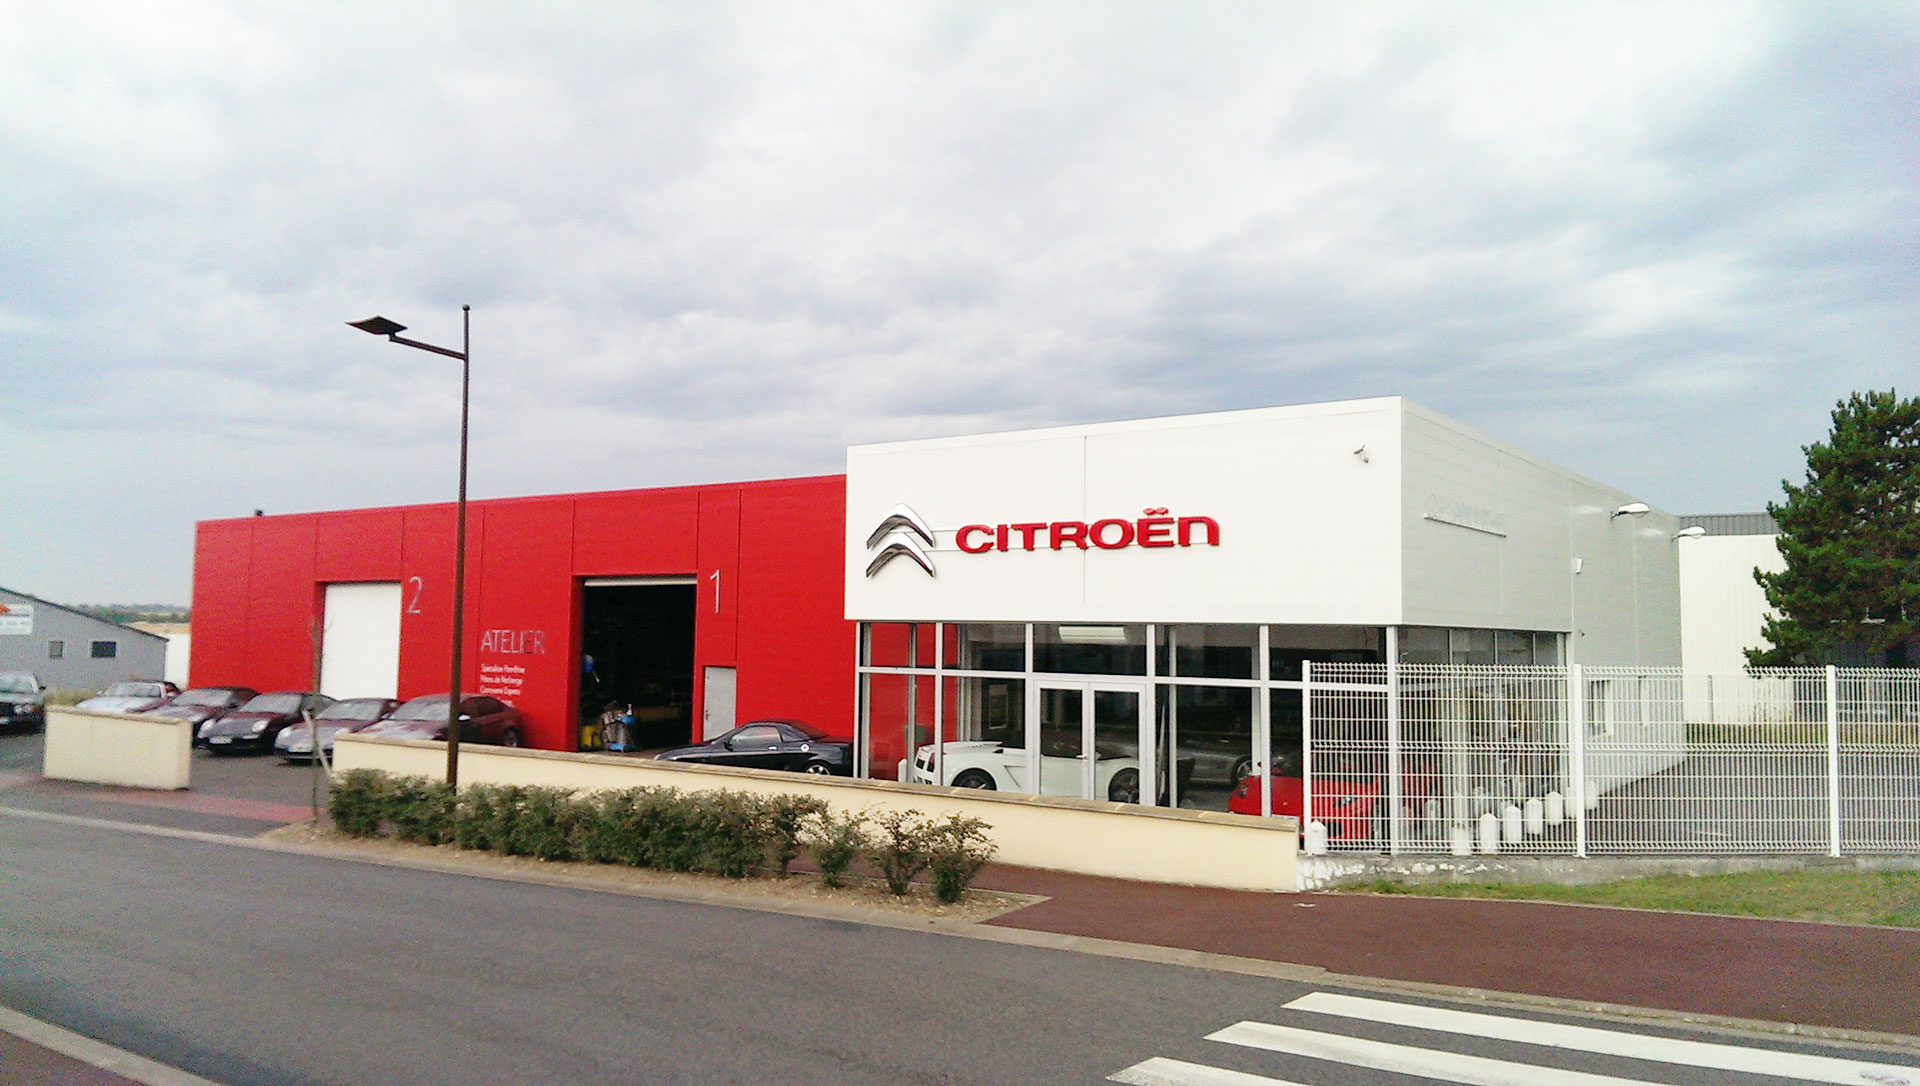 Garage citro n batayer saint mathieu r paration de for Citroen antibes garage